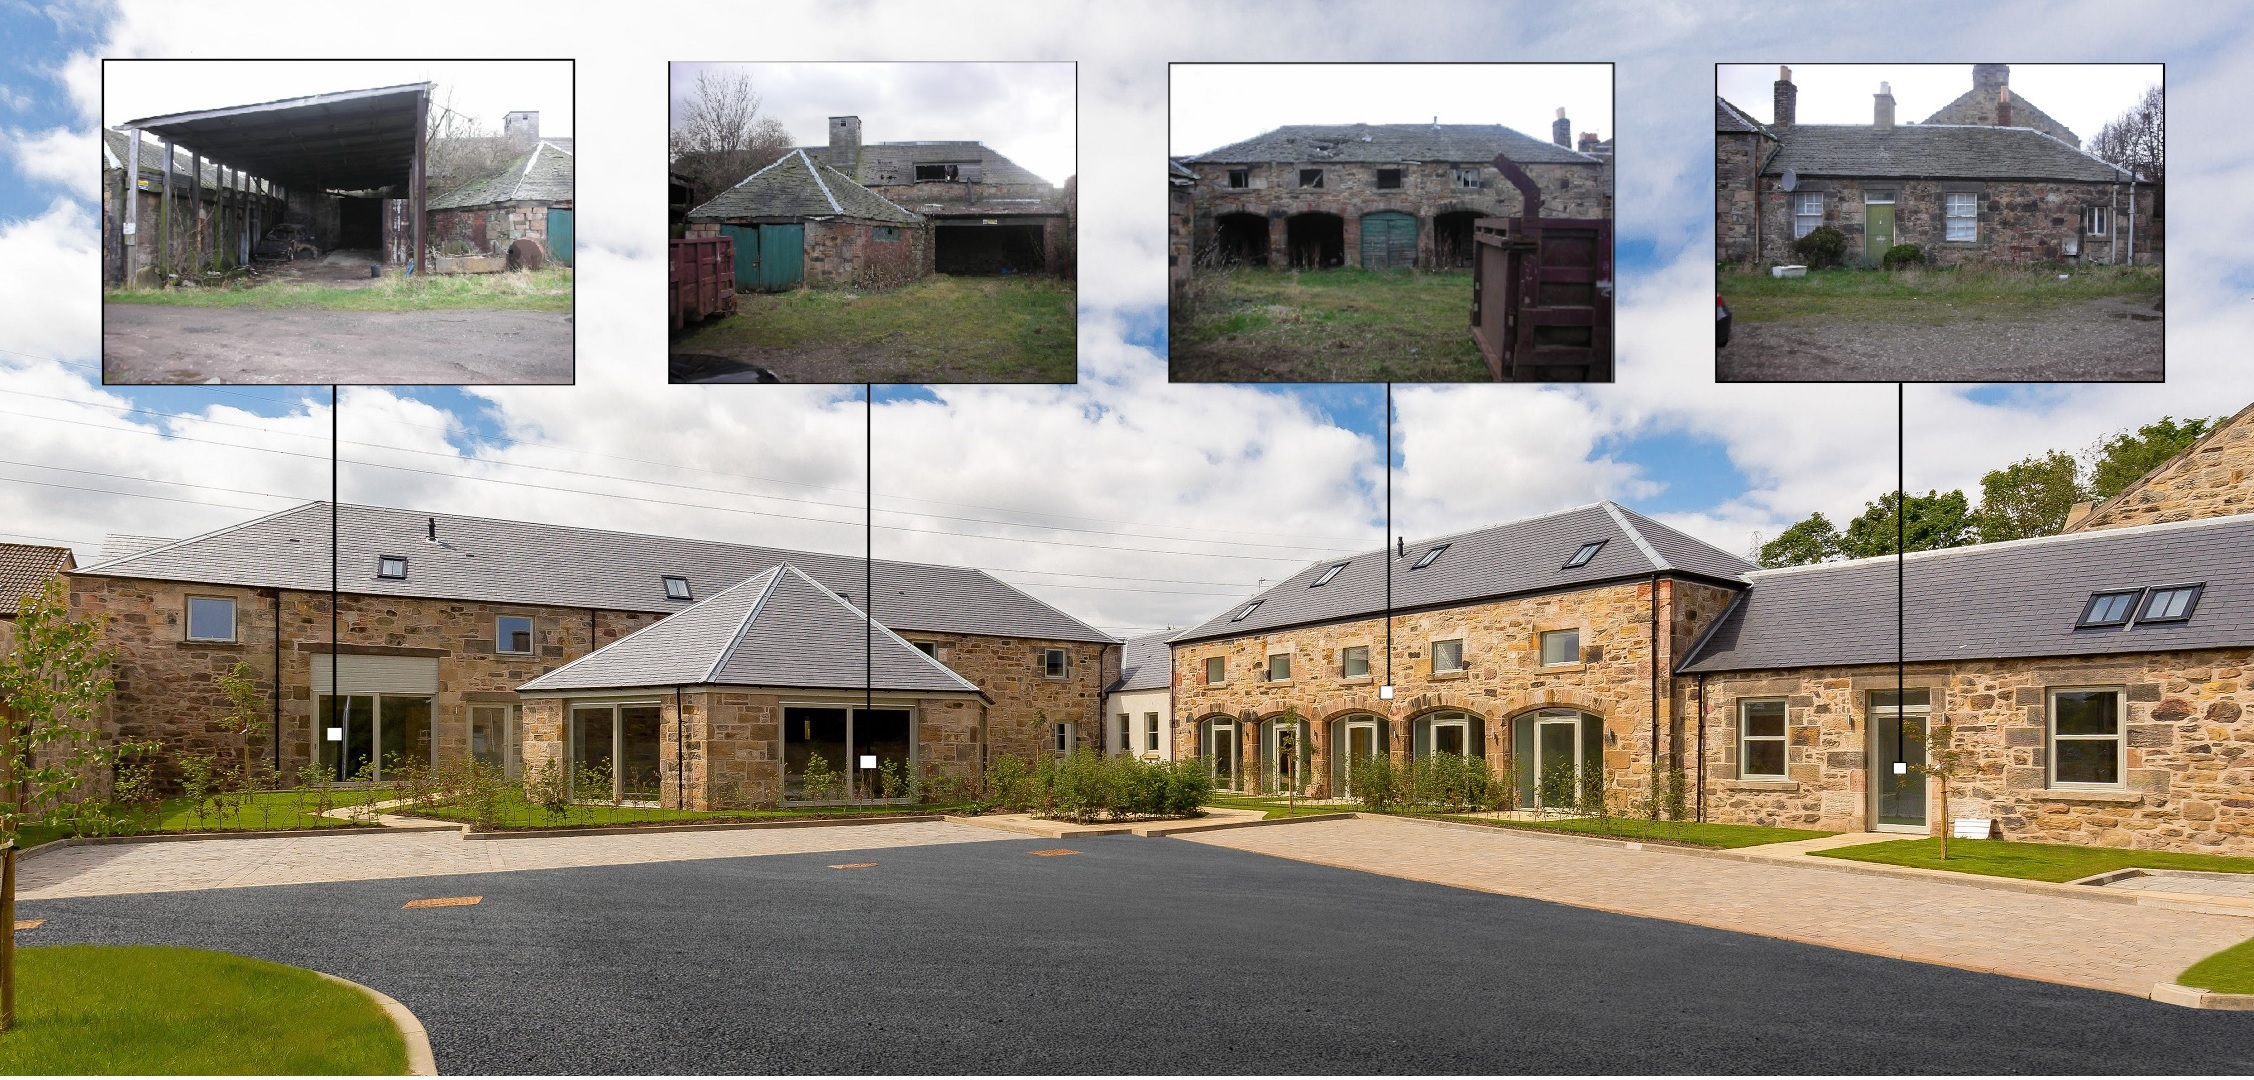 Views of Phase 2 Courtyard before refurbishment